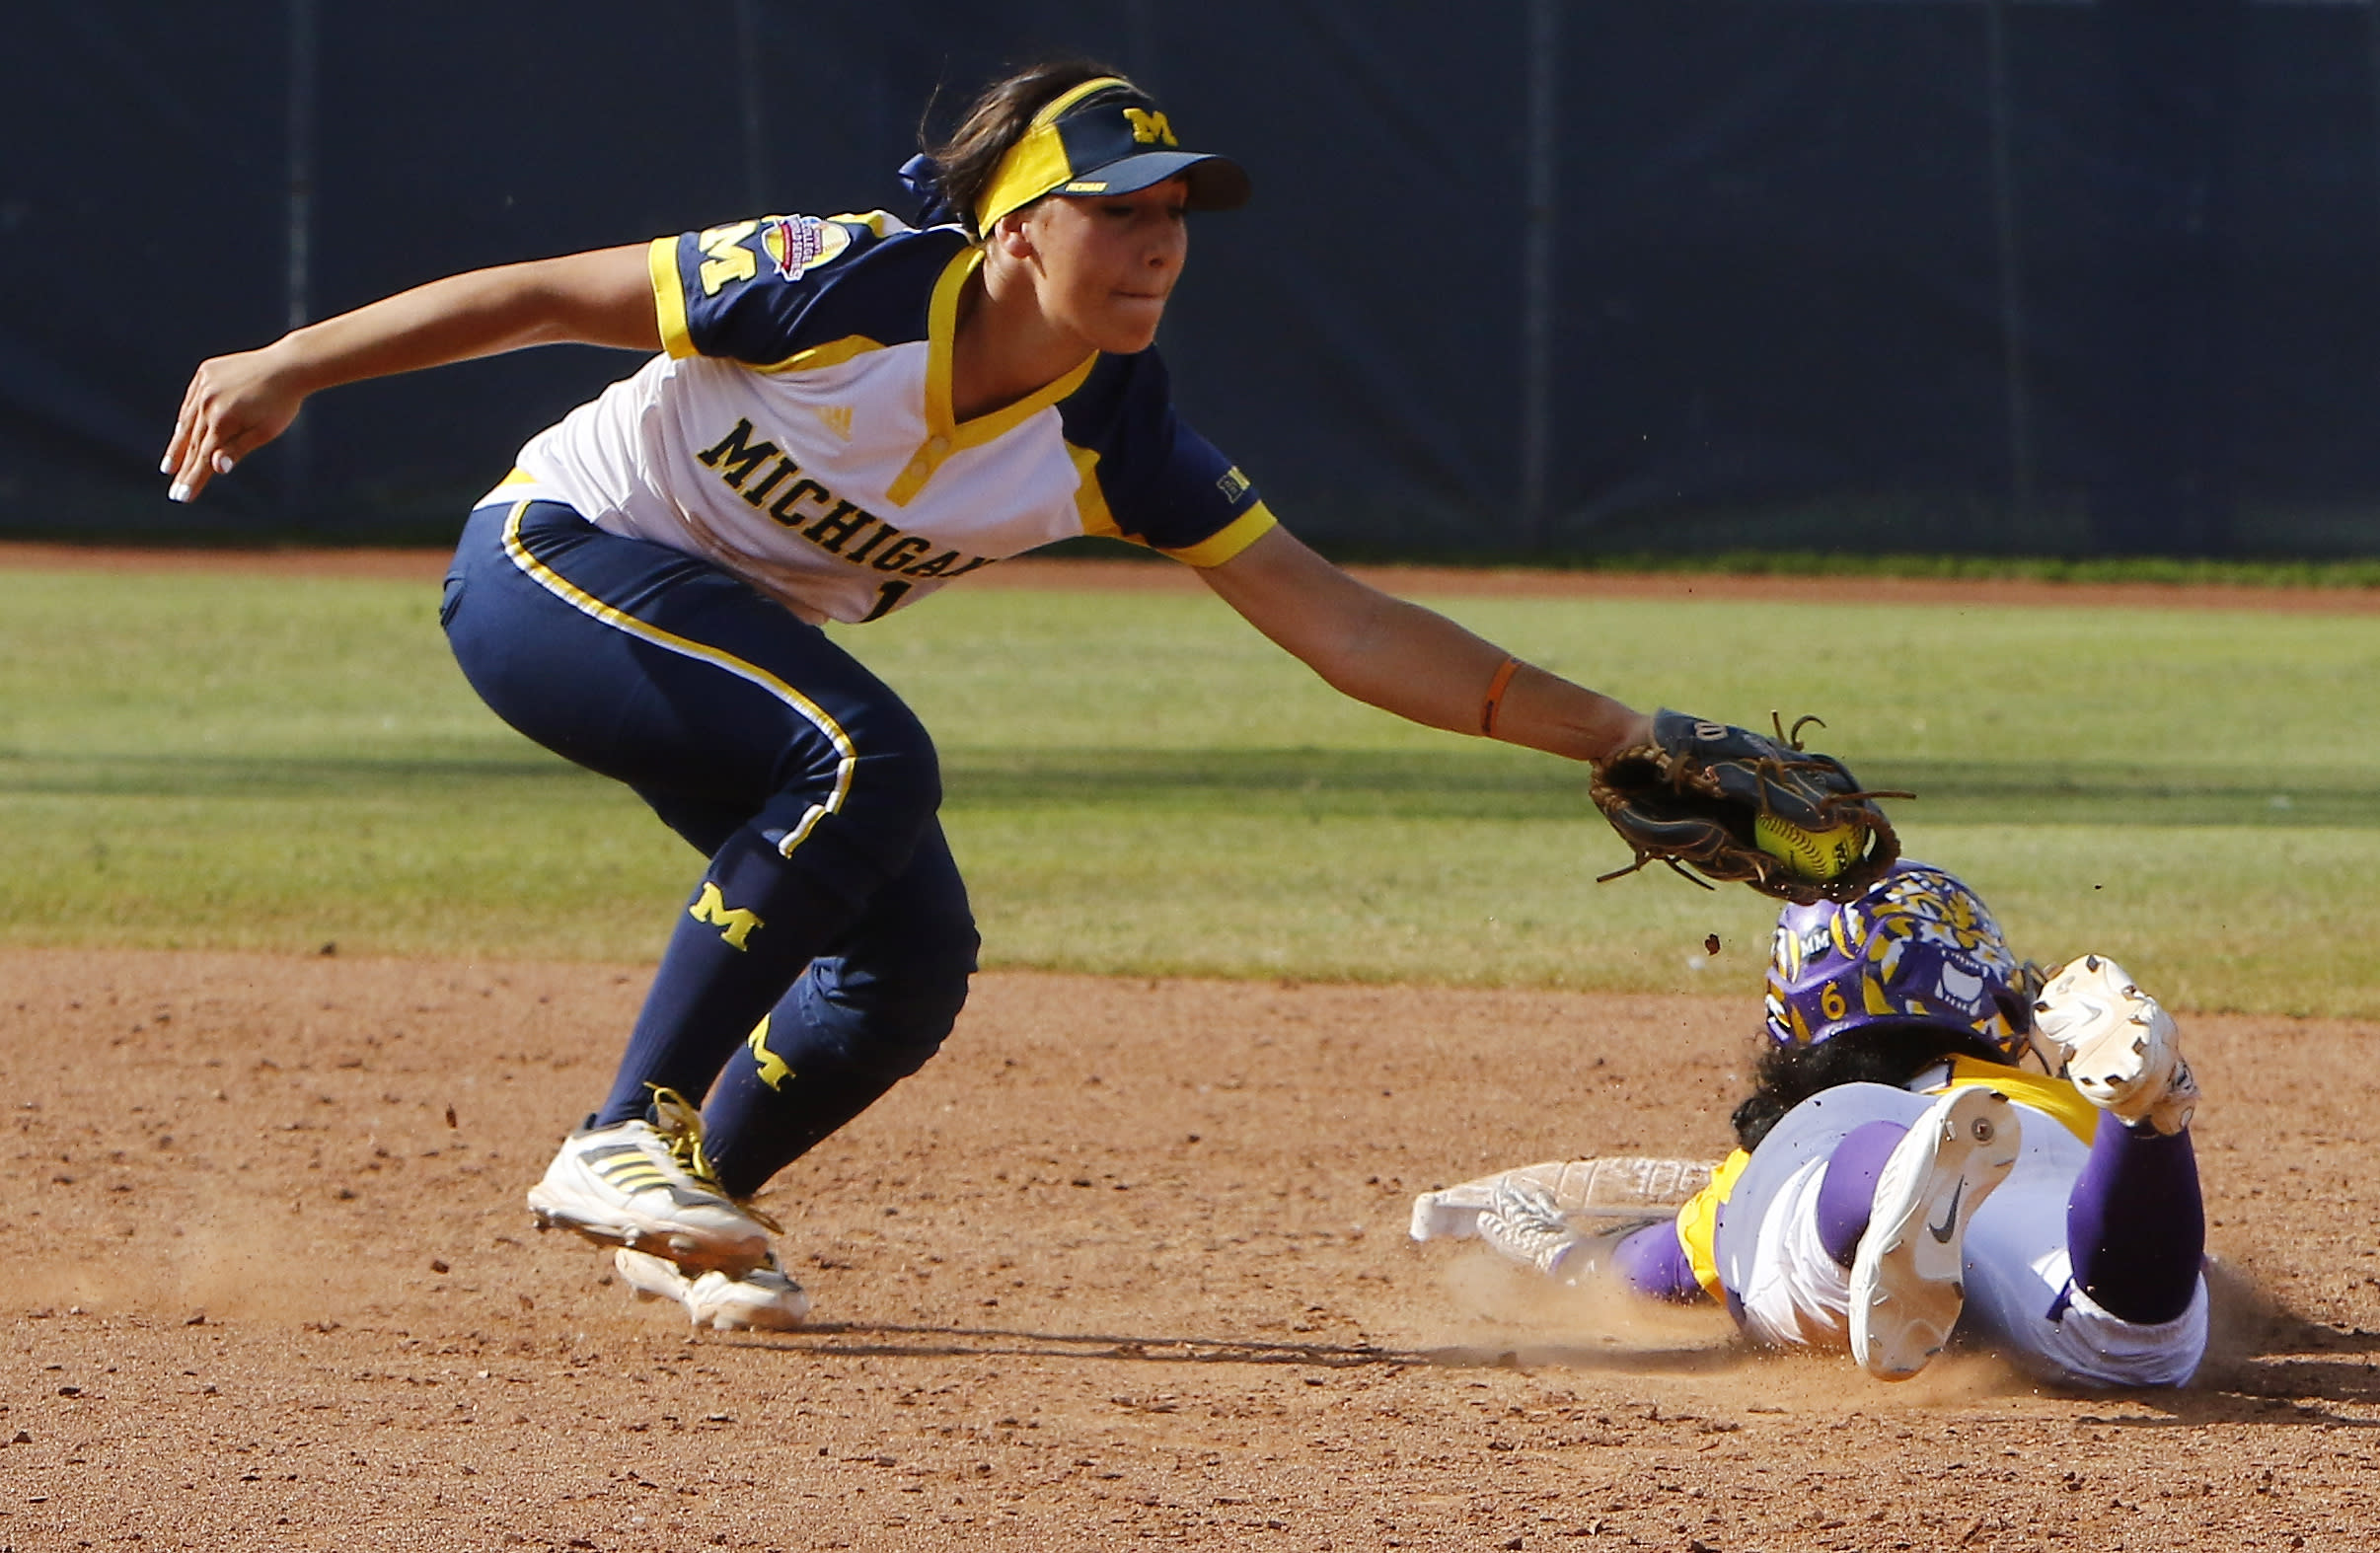 Michigan beats LSU 6-3, advances to championship series